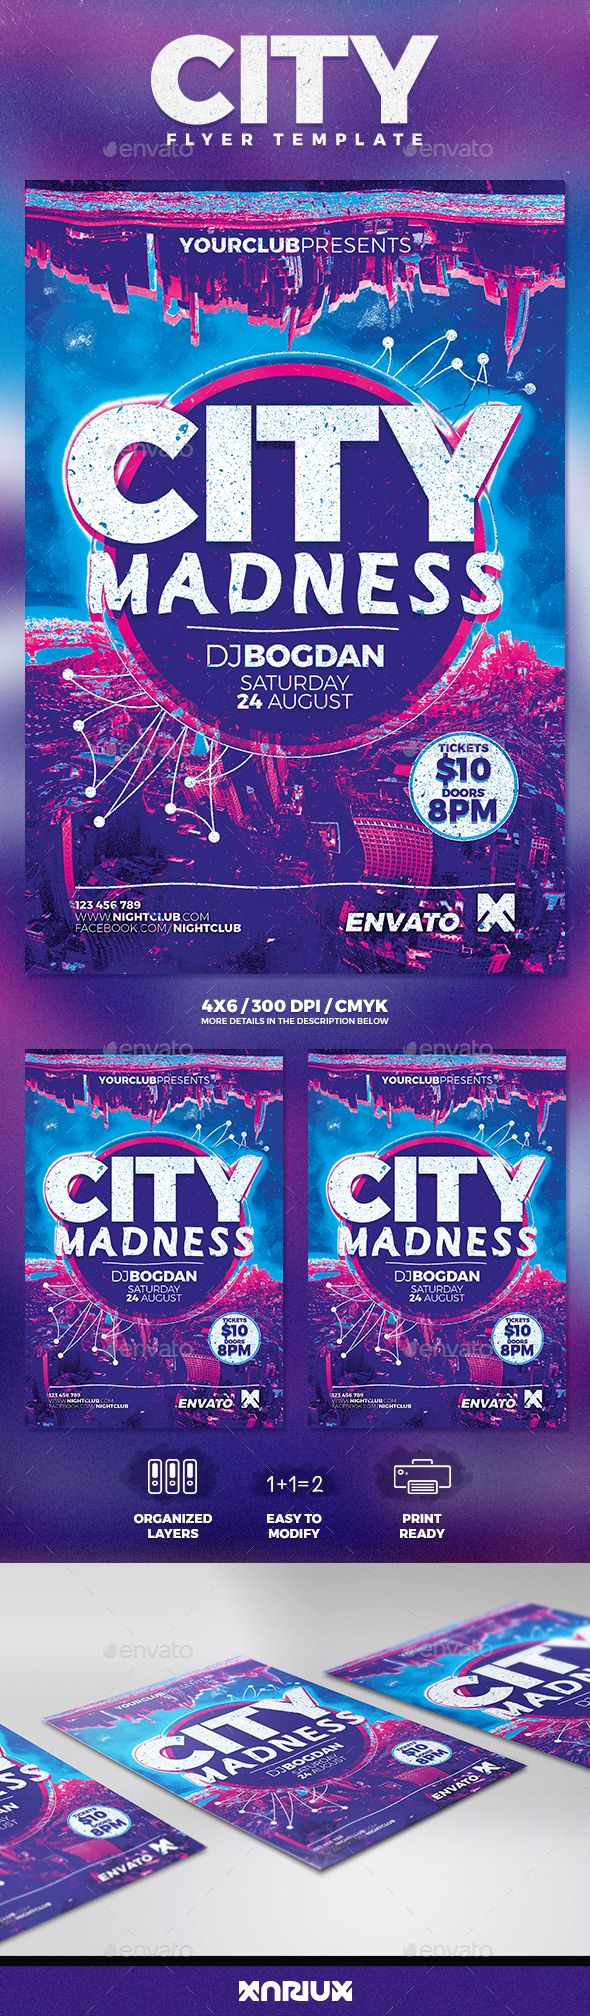 City Madness Flyer